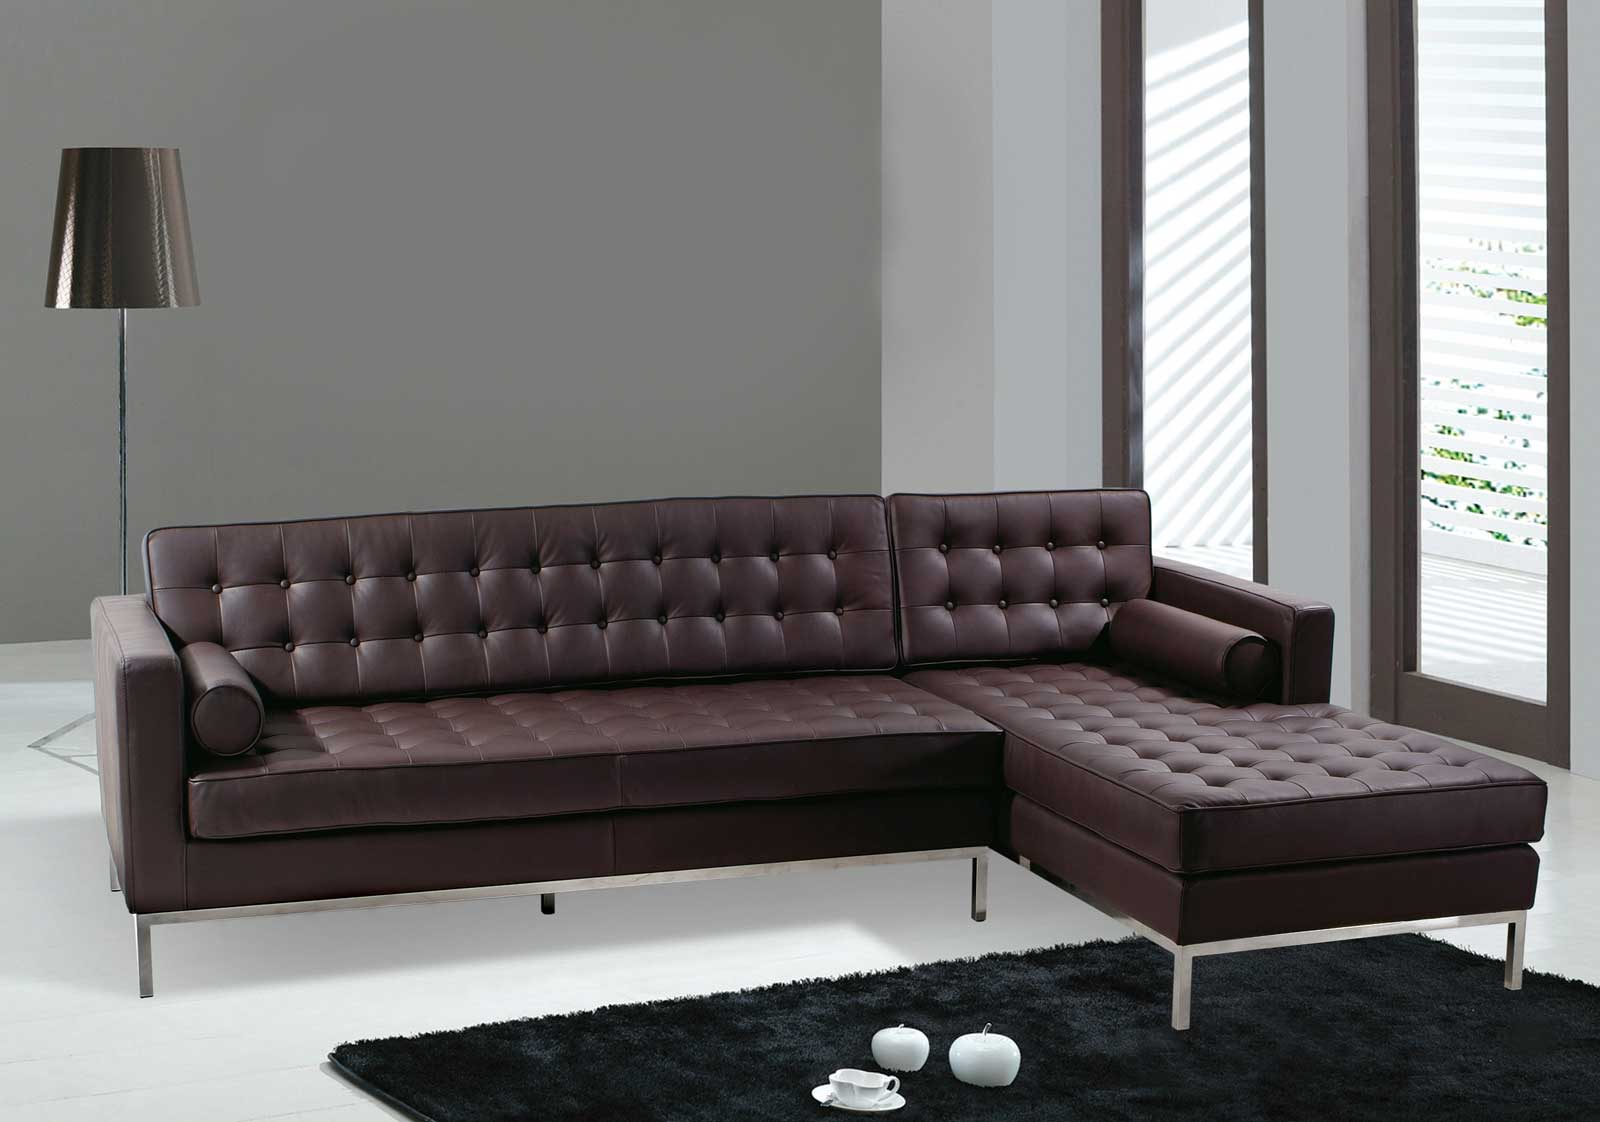 Modern sectional sofas for office waiting room for Modern sectional sofas